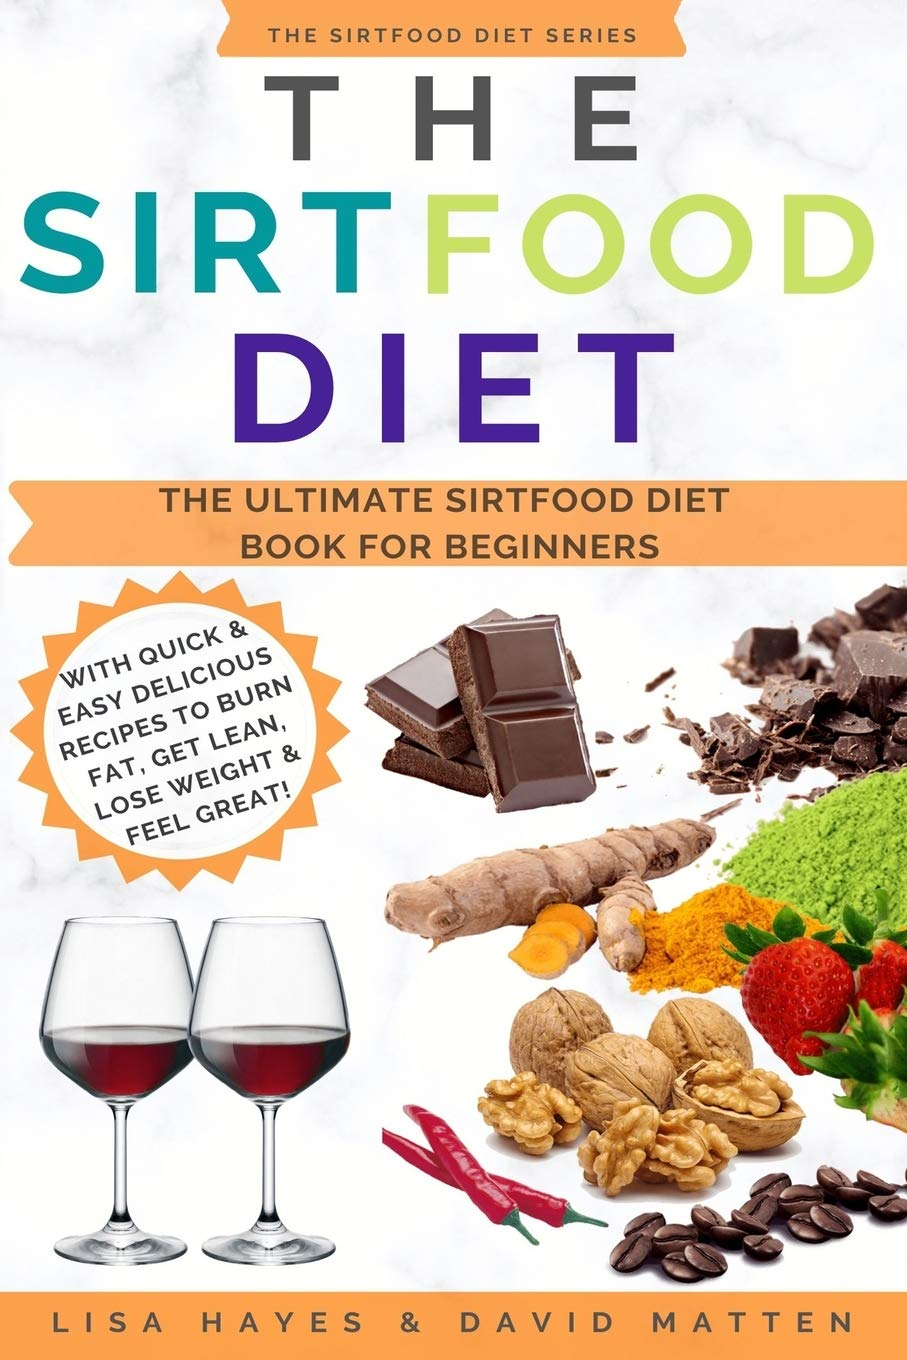 Read [PDF] The Sirtfood Diet The Ultimate Sirtfood Diet Book For Beginners With Quick Easy Delicious Recipes To Burn Fat Get Lean Lose Weight Feel Great